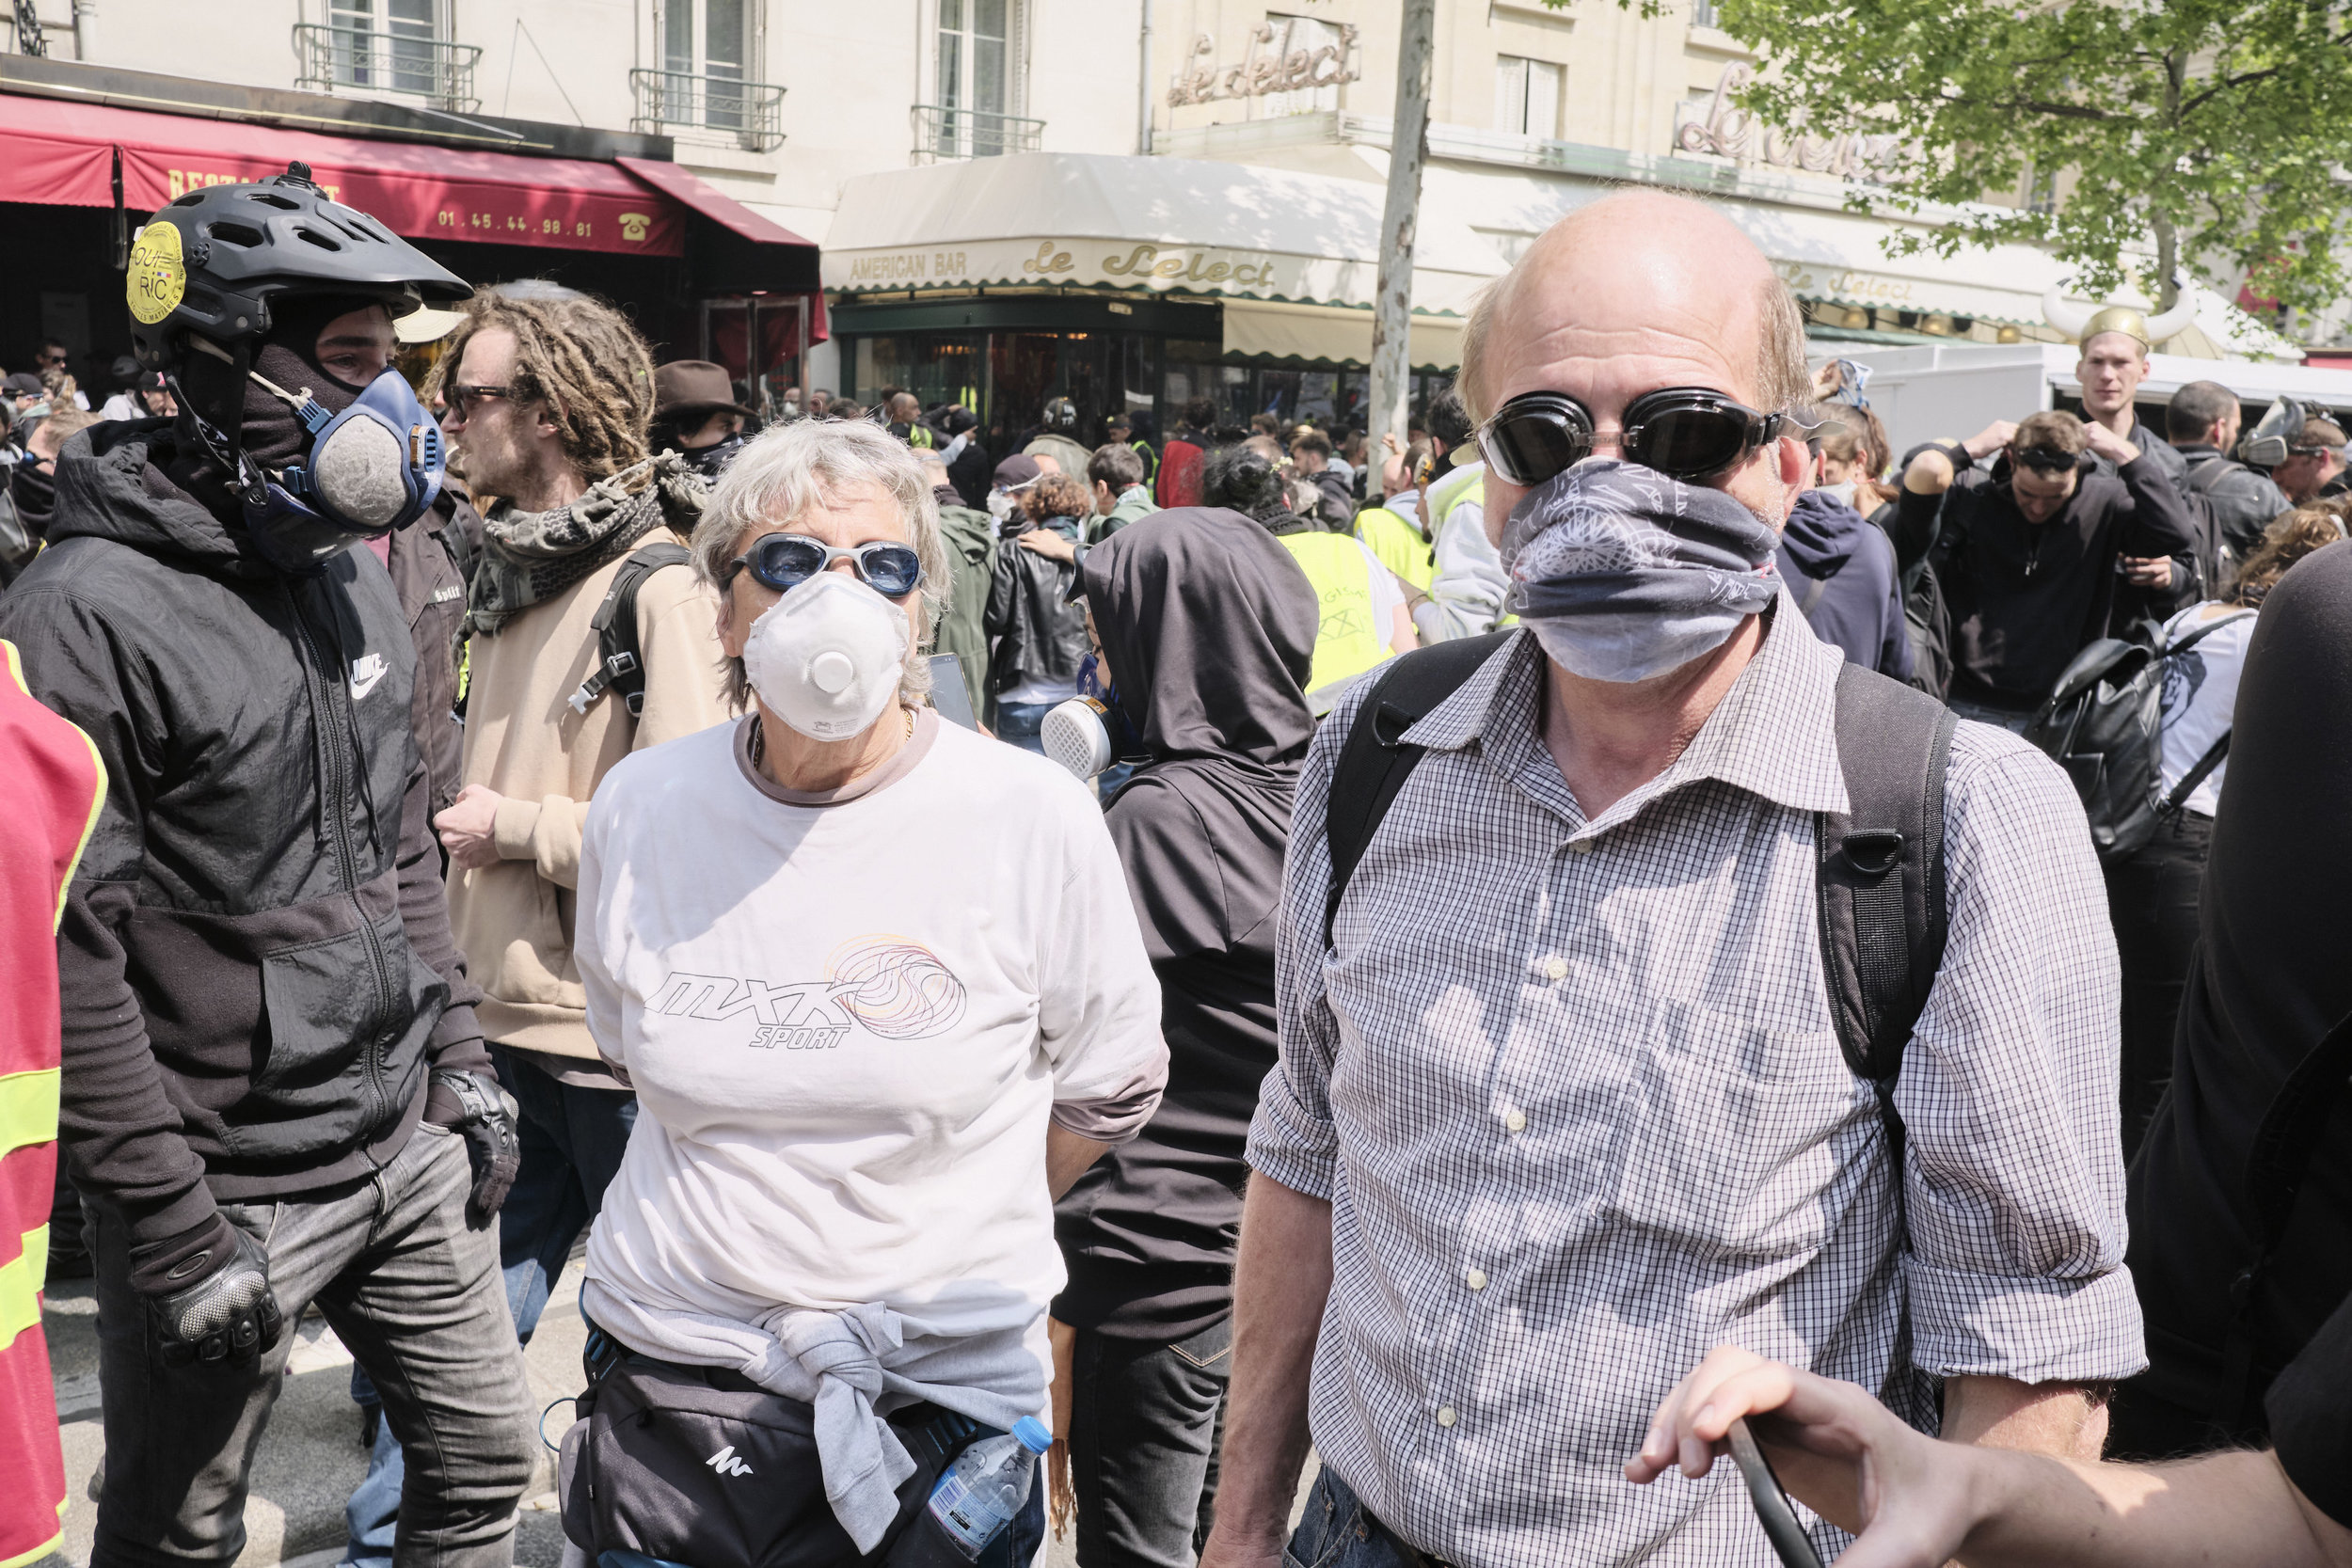 An elderly couple of protest participants with their makeshift protective equipment from the tear gasat Boulevard du Montparnasse.